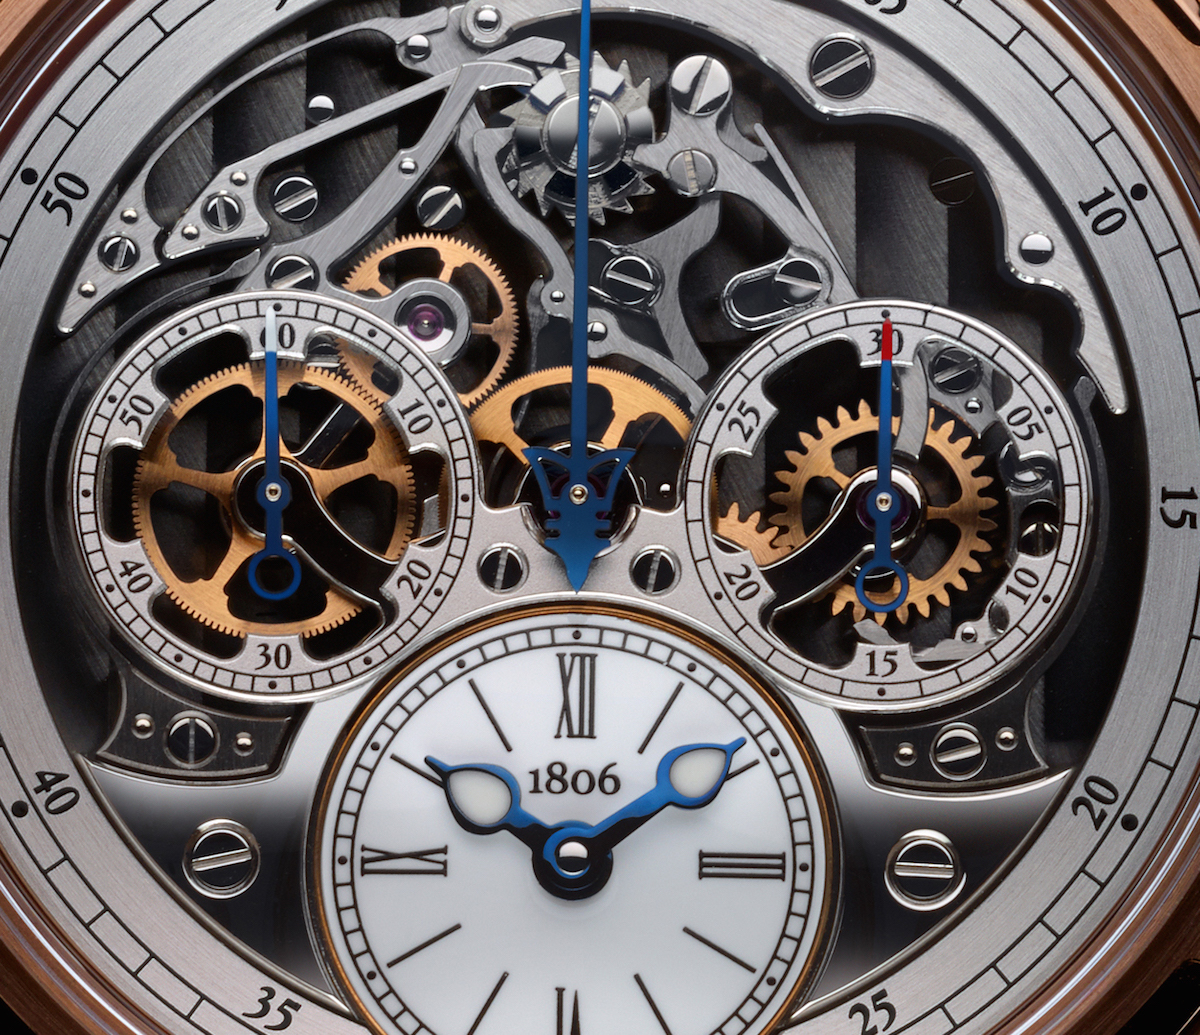 A close-up view demonstrates the intricacy of the movement